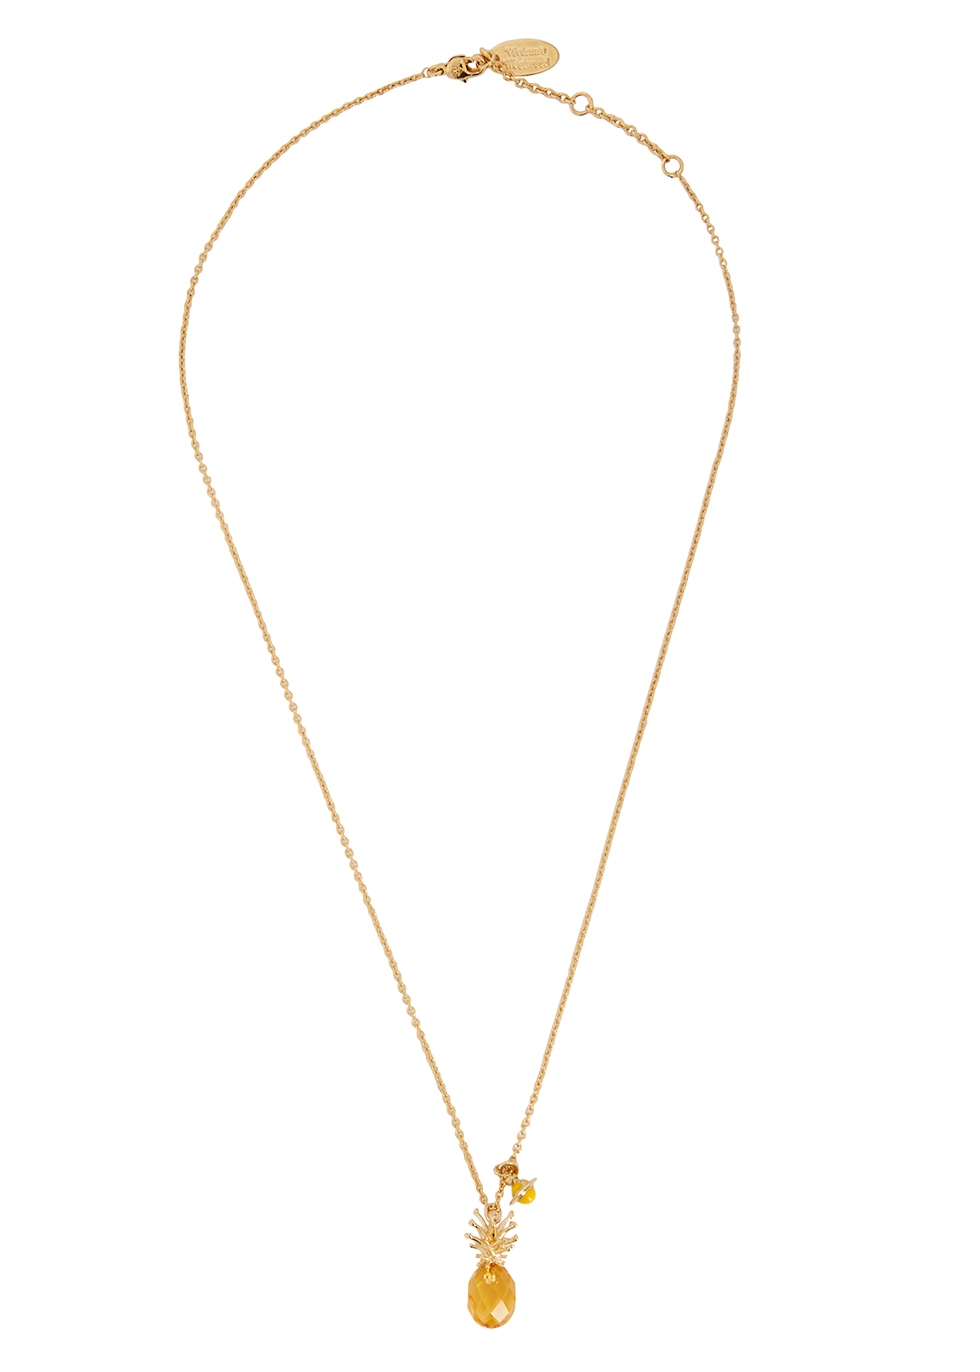 Pineapple gold-tone necklace - Vivienne Westwood